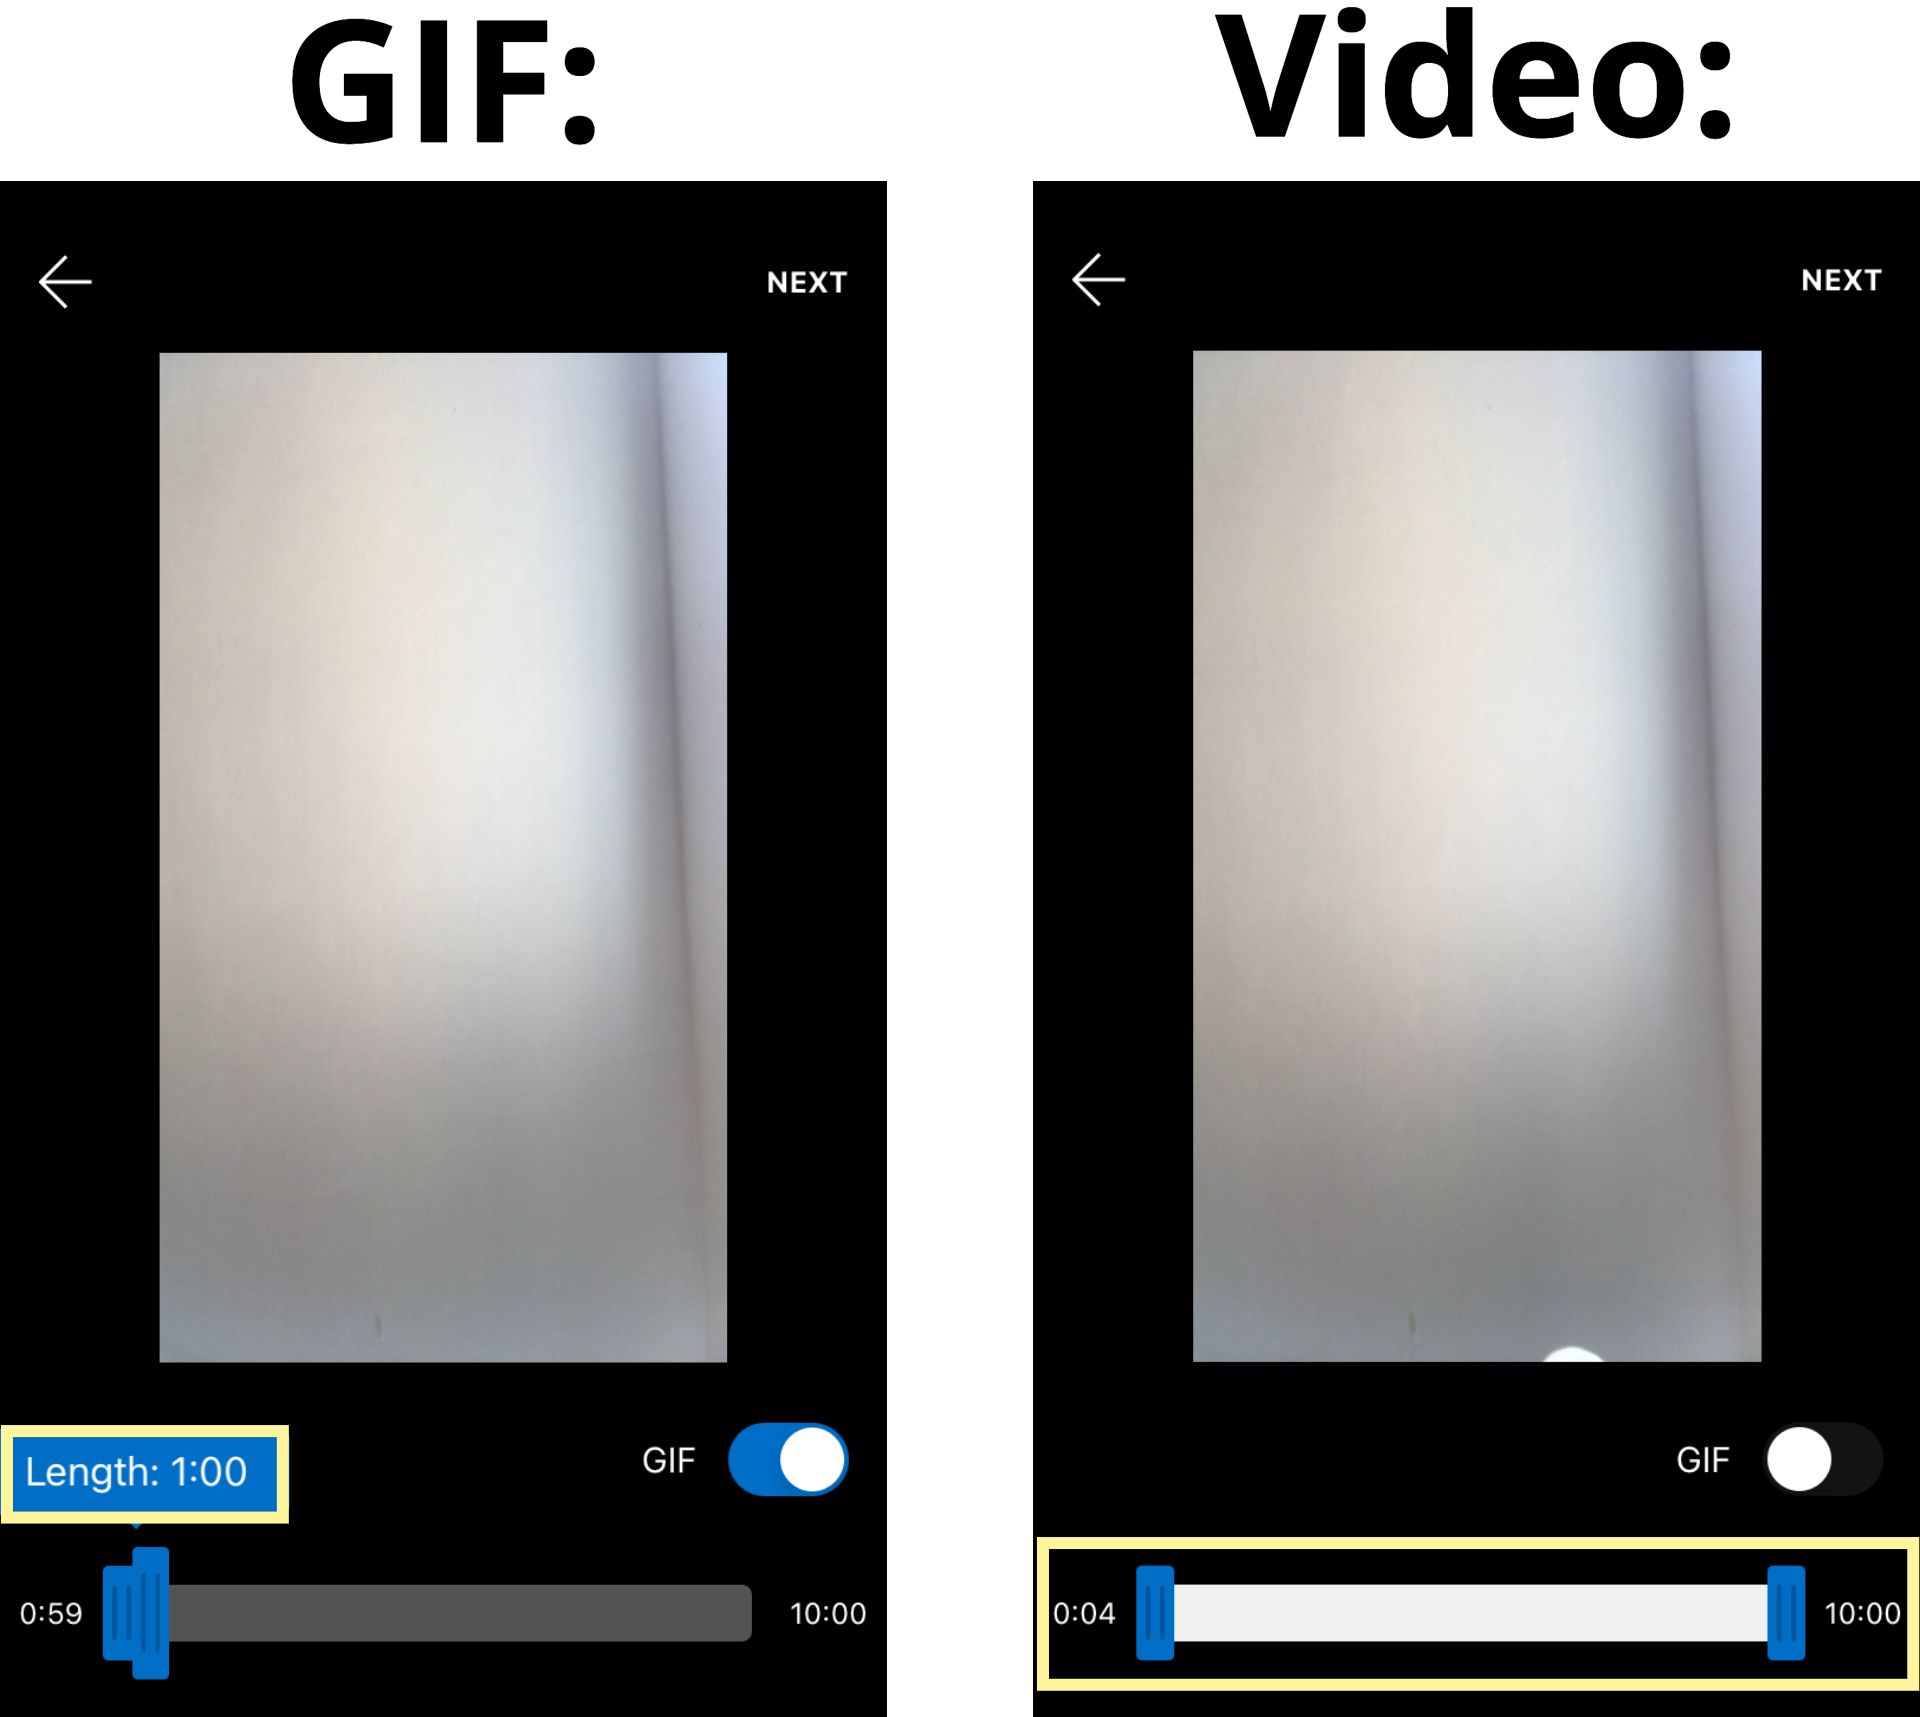 Screenshots showing the length limits for video and GIF posts in the Reddit video feed.